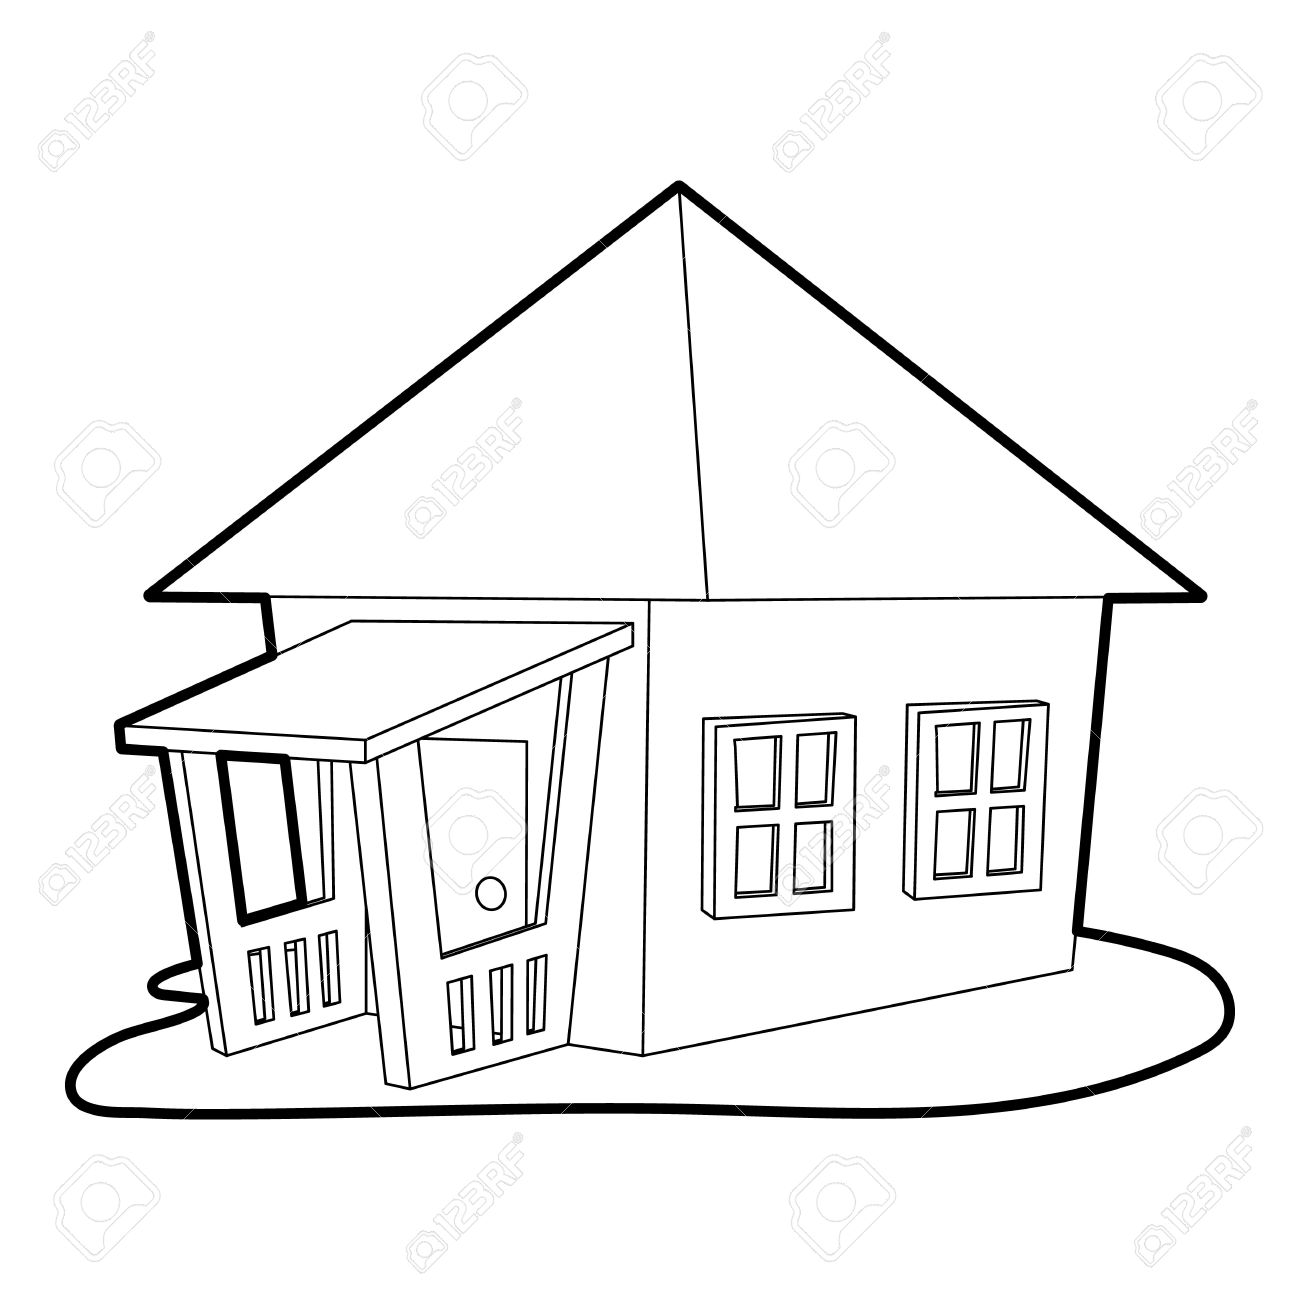 Bungalow Icon Outline Illustration Of Vector For Web Stock